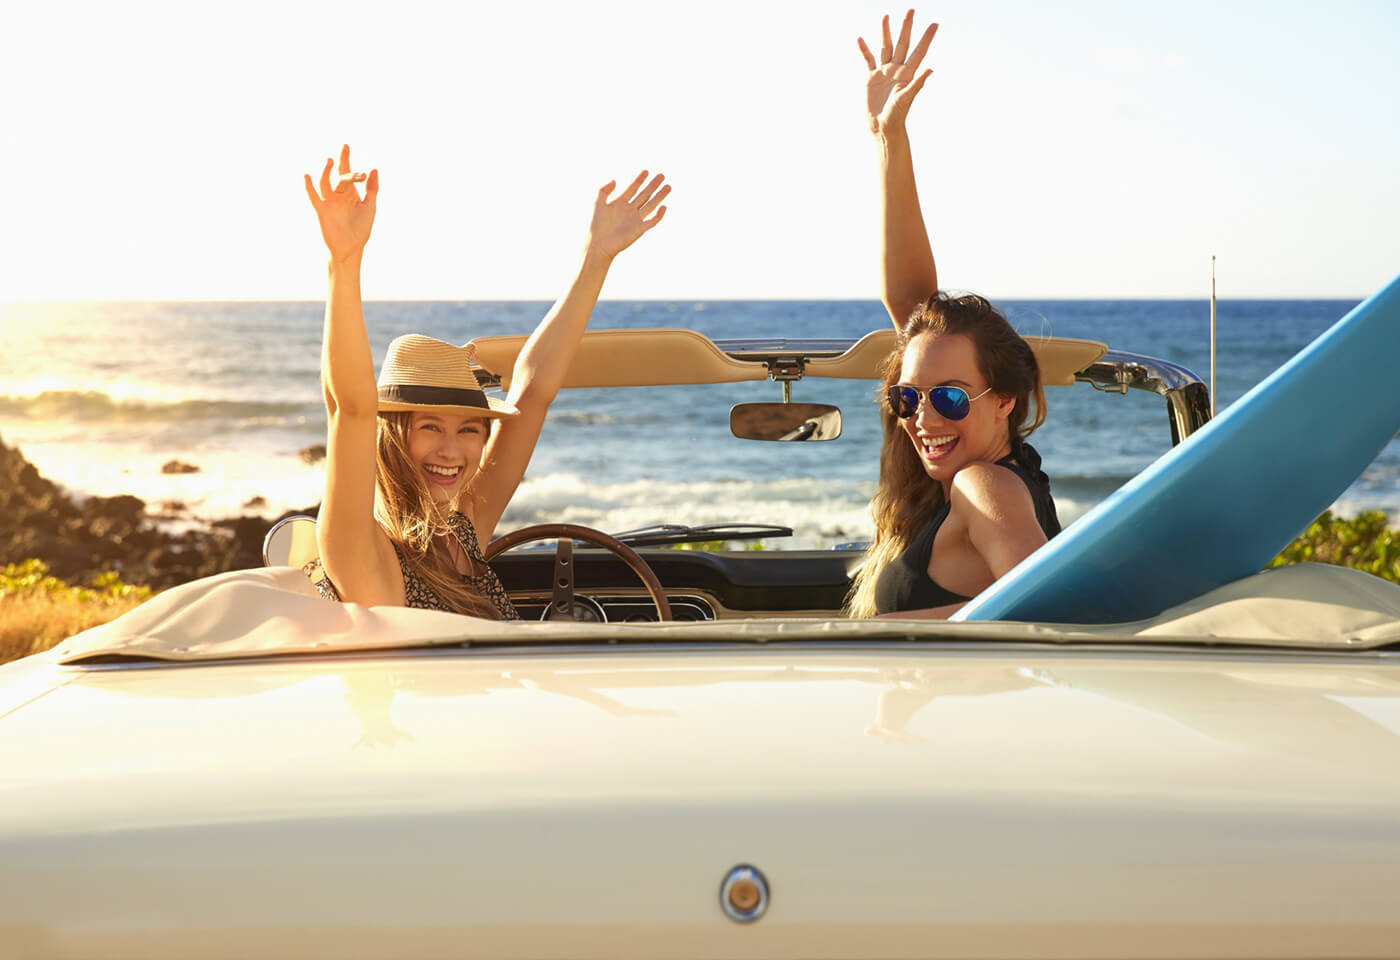 Image of two girls in convertible car